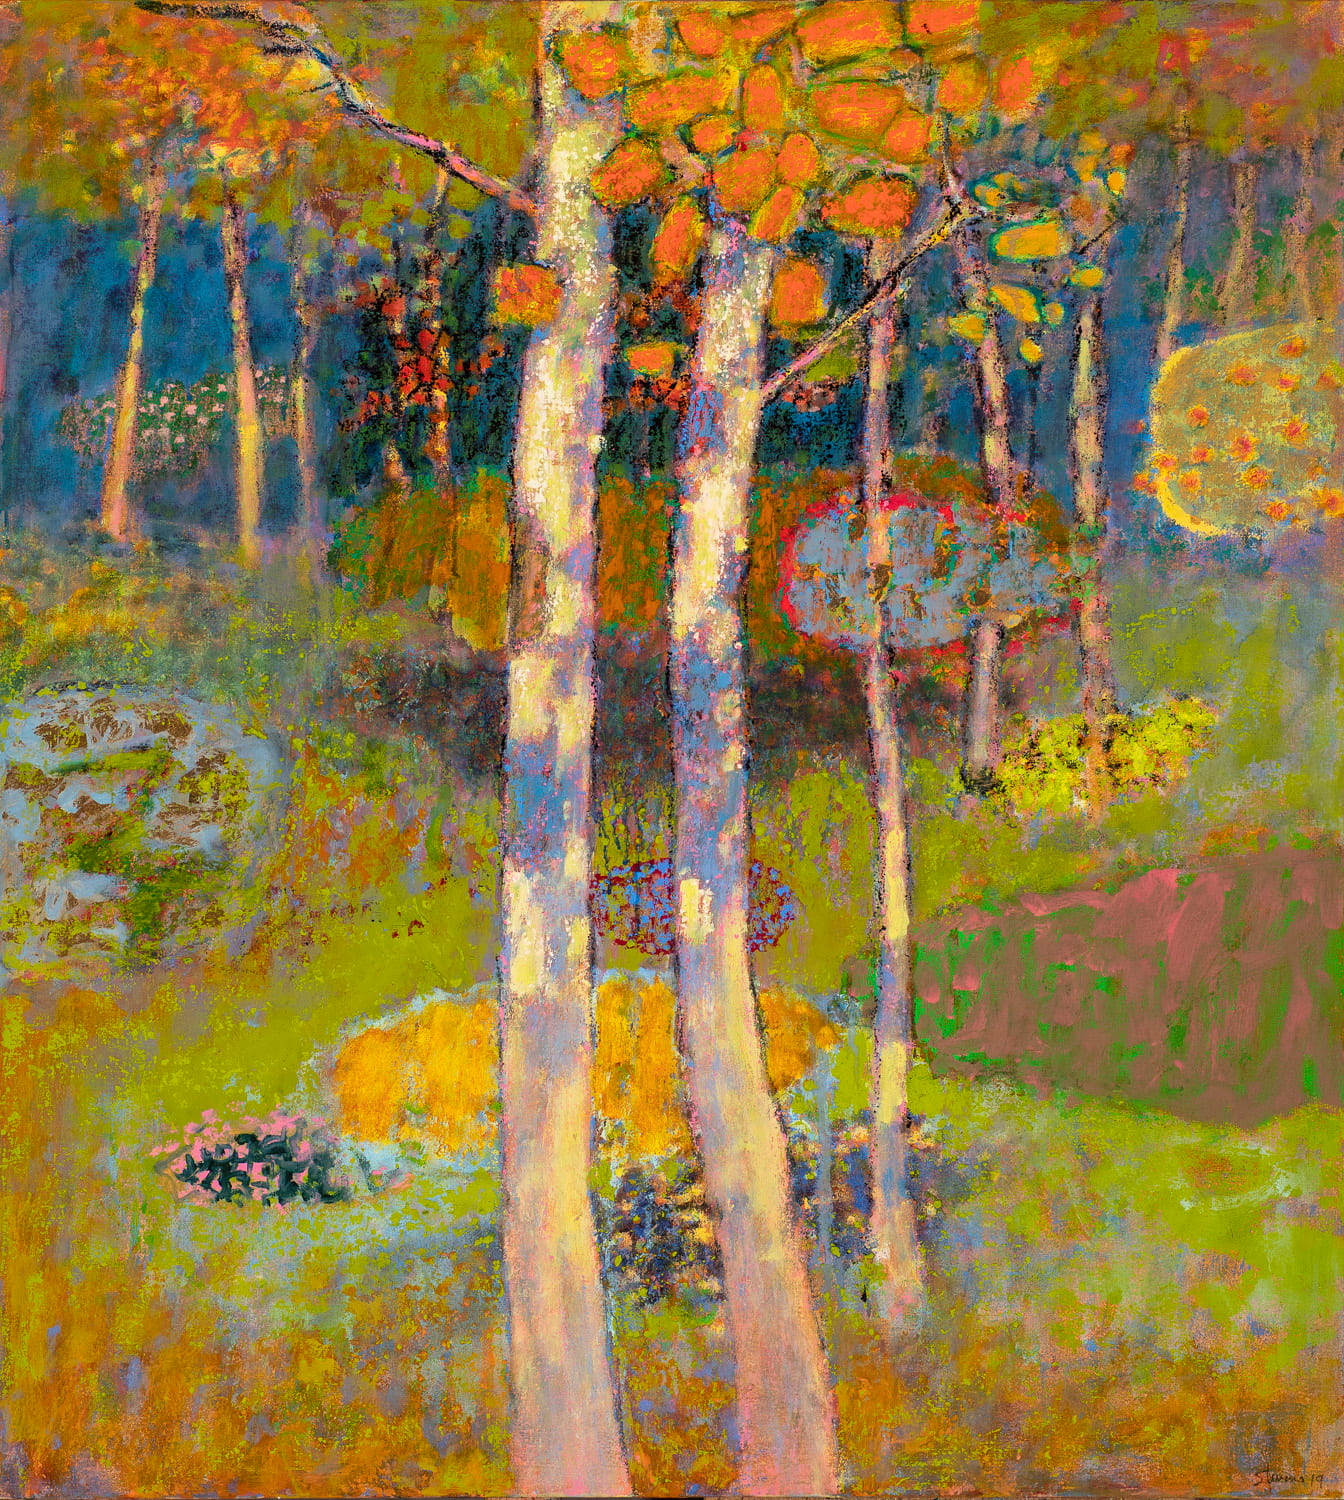 Facing The Mystery  | oil on canvas | 40 x 36"